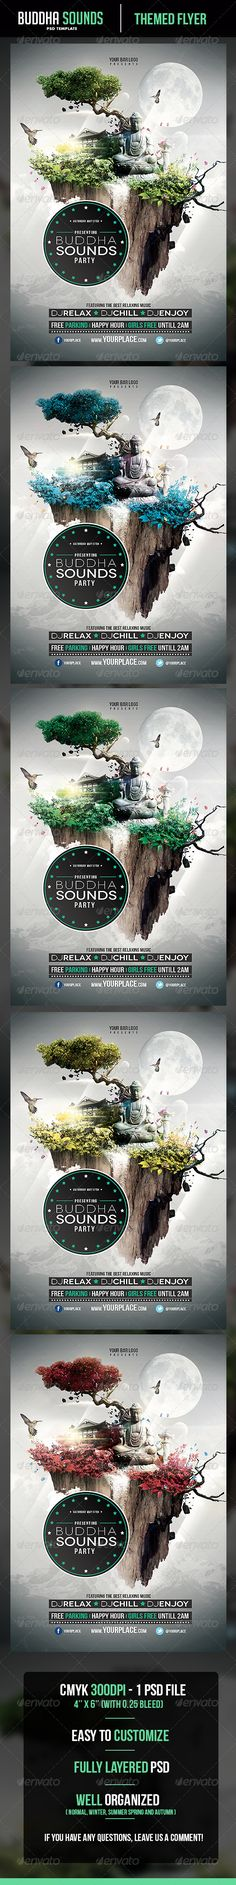 Buddha Sounds Flyer Template  #GraphicRiver        Buddha Sounds Flyer Template    - 1 PSD – CMYK 300DPI – 4'' x 6'' (with 0.25 bleed)  - Easy to customize  - 5 Different Themes! Normal, Winter, Summer, Spring and Autumn  - Fully layered PSD  - Fonts links in .txt file  Bebas Neue:  .dafont /bebas-neue.font Novecento:  .fontsquirrel /fonts/novecento-wide   If you have any questions, just leave a Comment!!     Check out our other Designs…